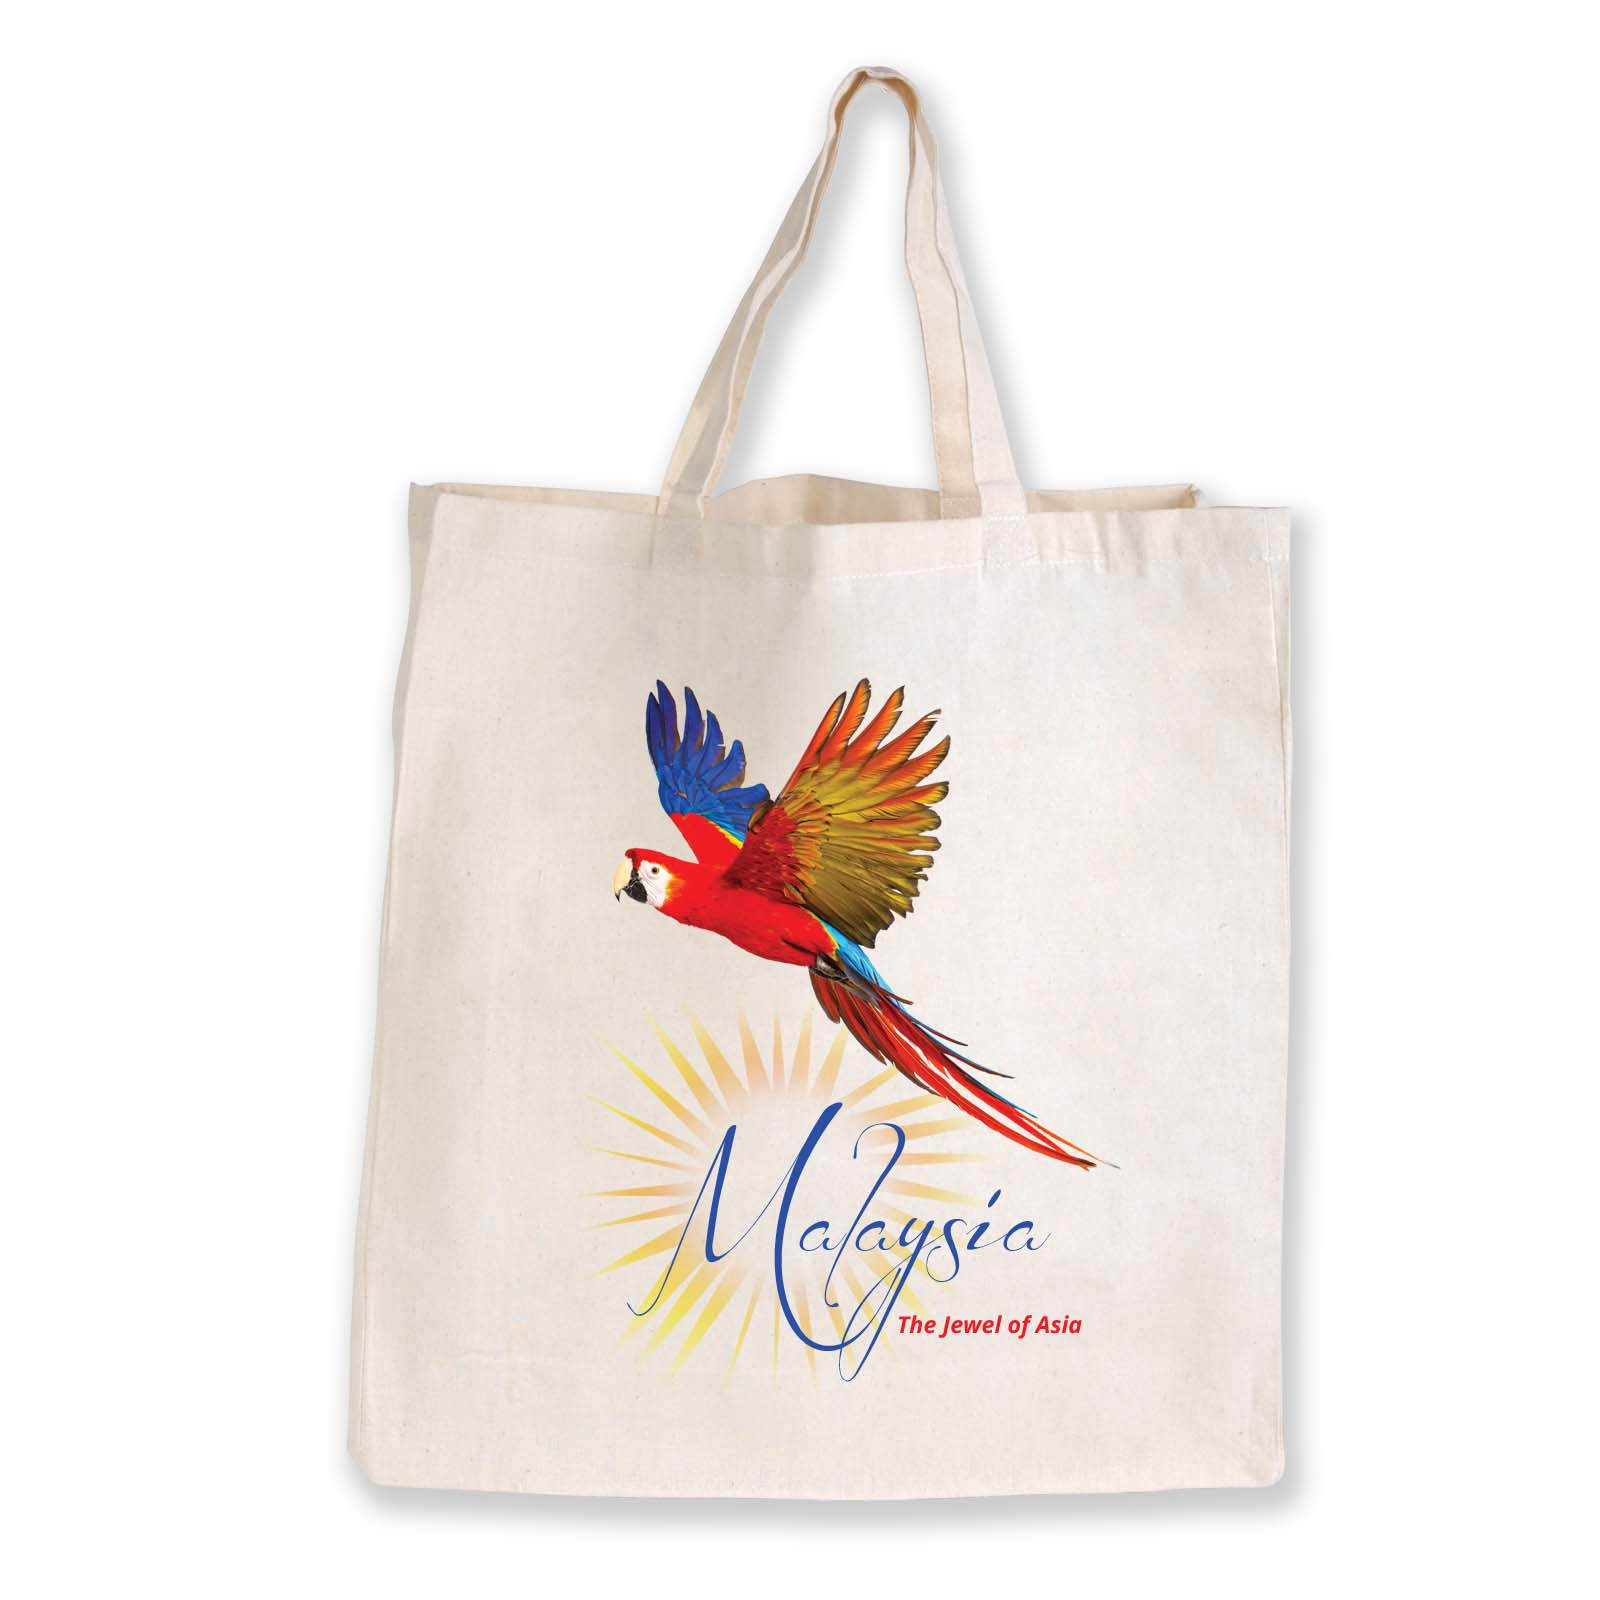 Supa Shopper Short Handle Calico Bag - 130 GSM - Includes a 1 colour printed logo